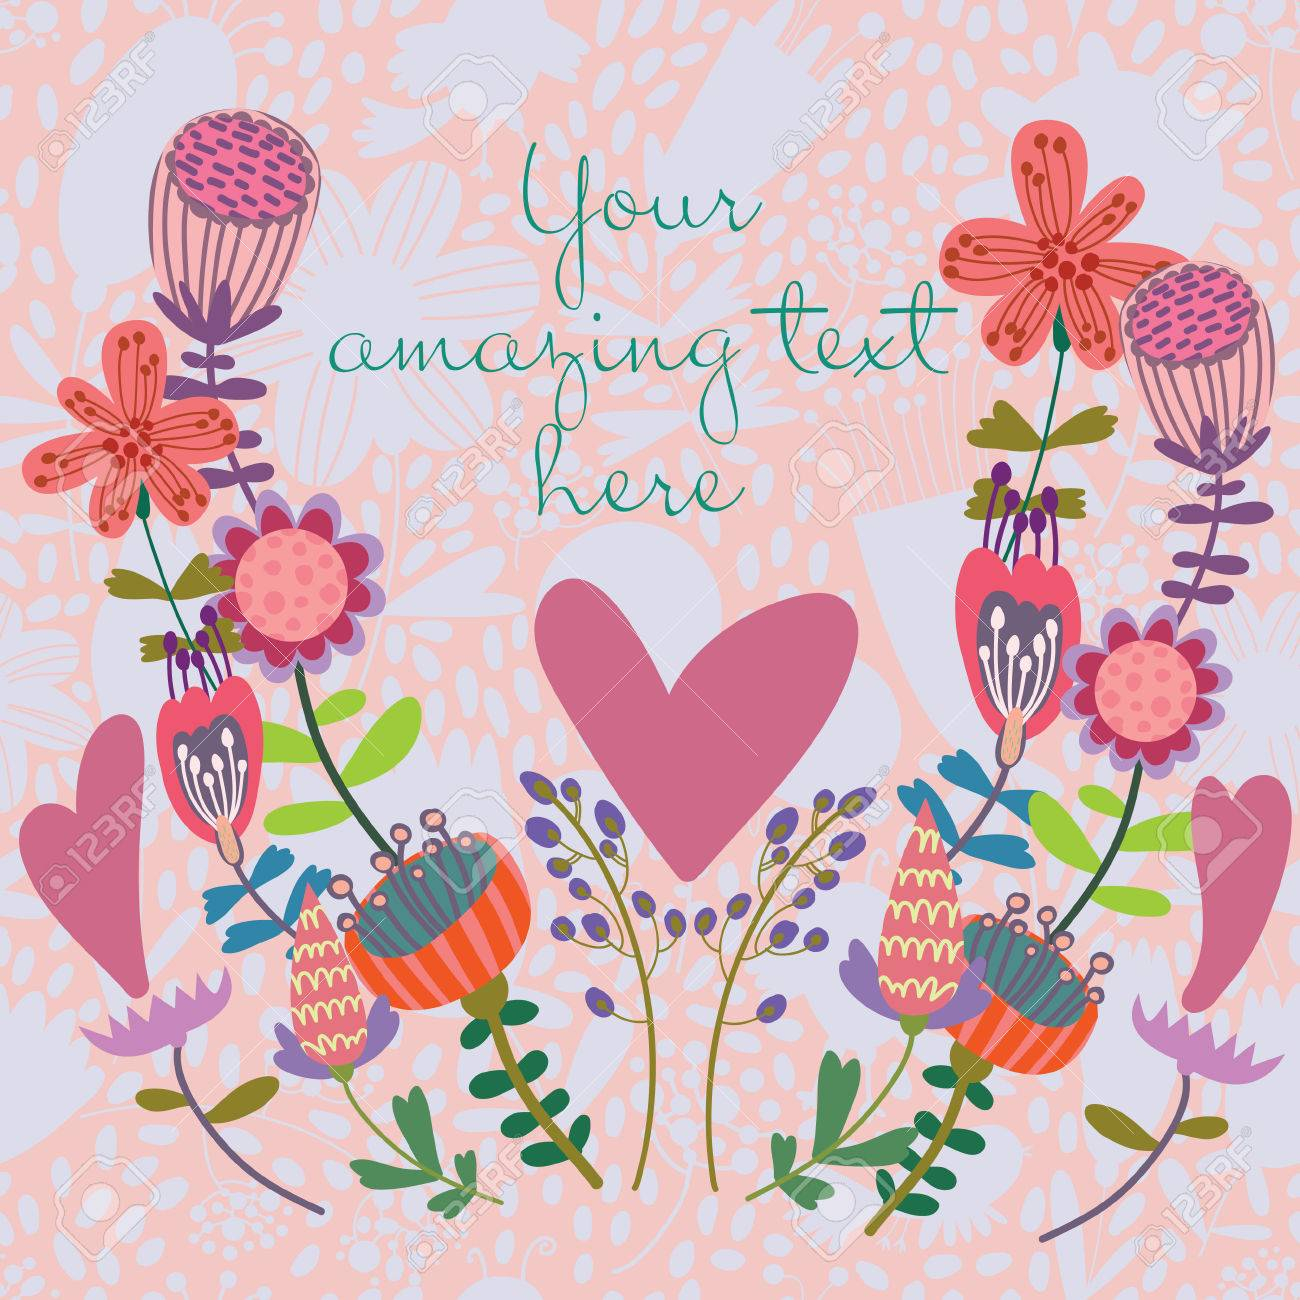 Beautiful Greeting Card With Flowers Bright Illustration Can Be Used As Creating